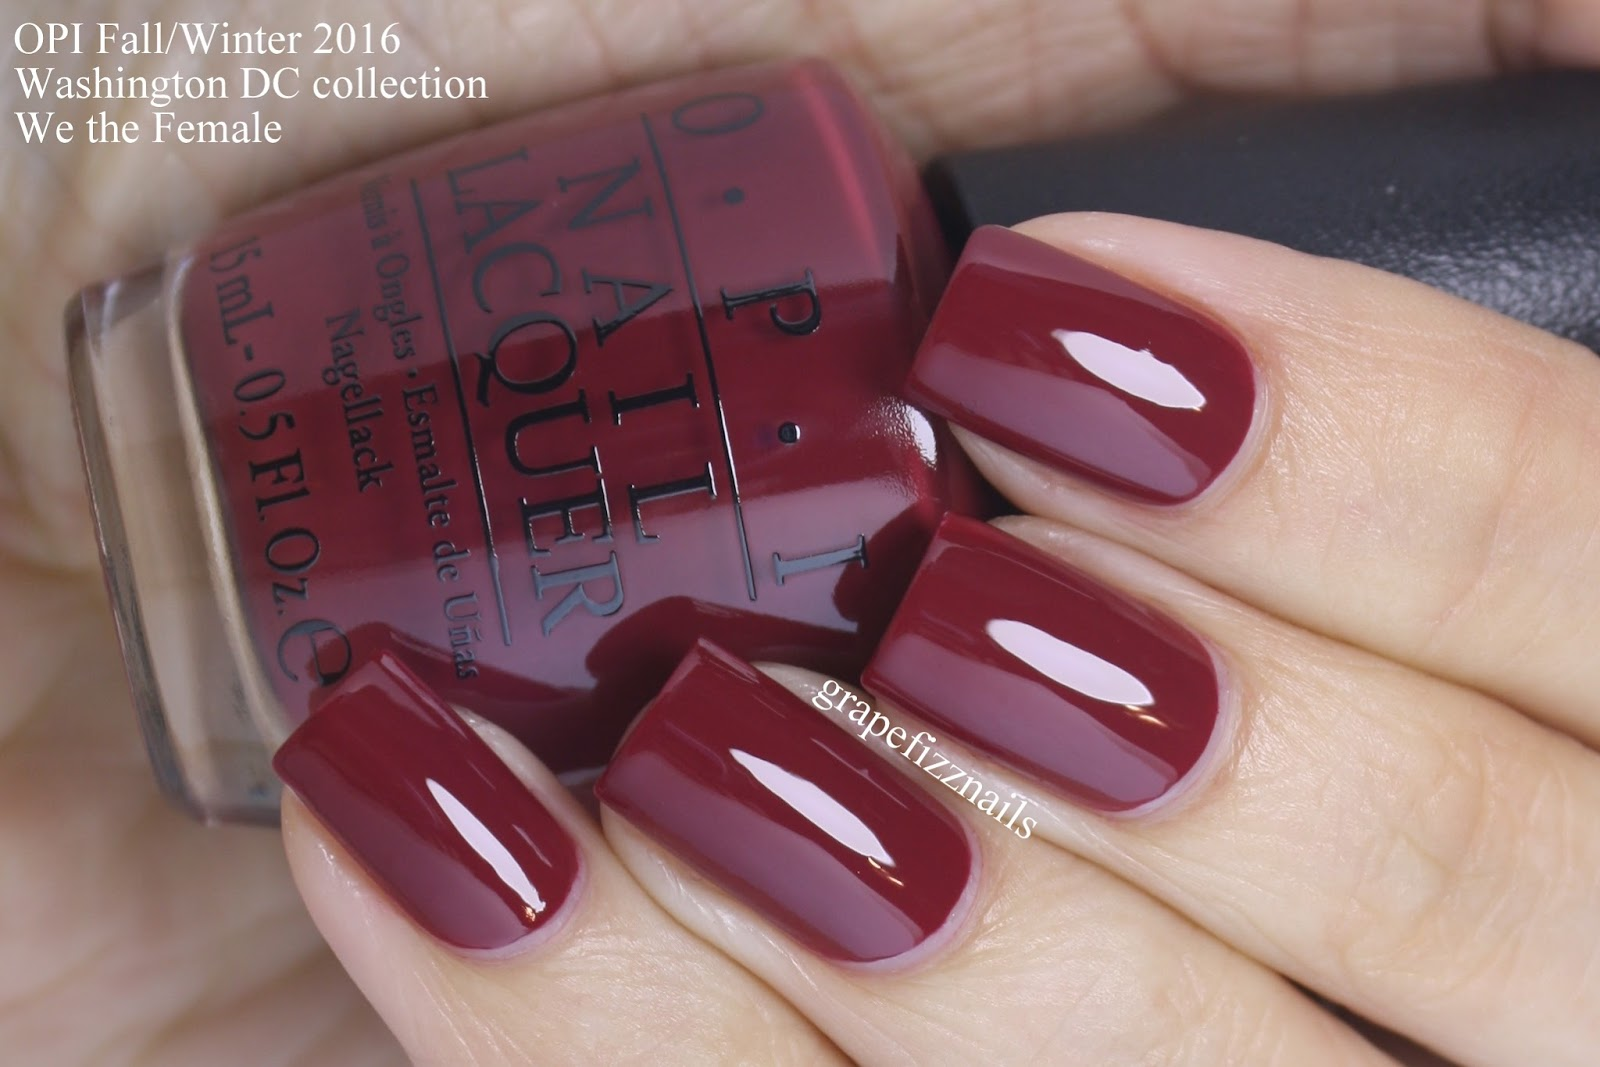 Grape Fizz Nails: OPI Washington DC Collection for Fall/Winter 2016